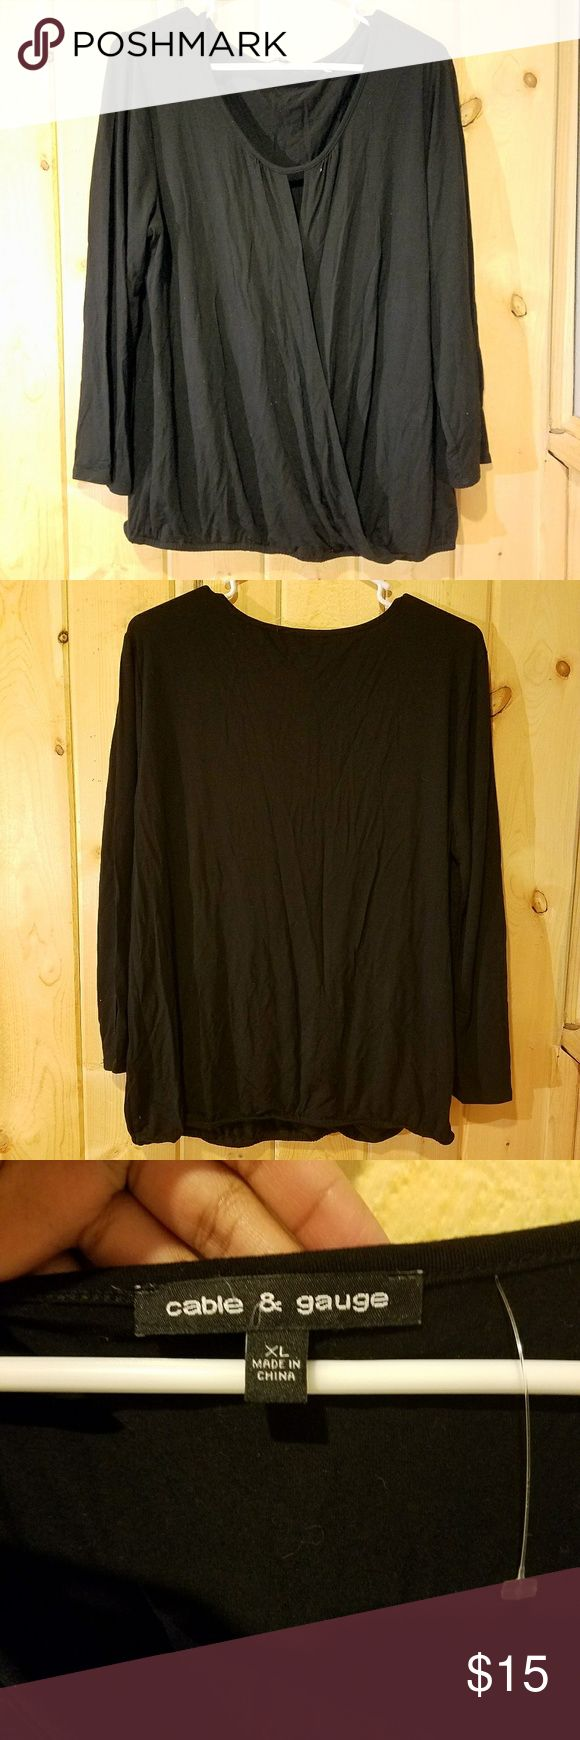 NWOT Black Surplice Top NWOT Black Surplice Top  Size XL 95% Viscose 5% Spandex Loose fit Cinched at the waist Pair this surplice top with some light wash skinny jeans or shorts for a casual outfit.  Make an offer! Tops Blouses